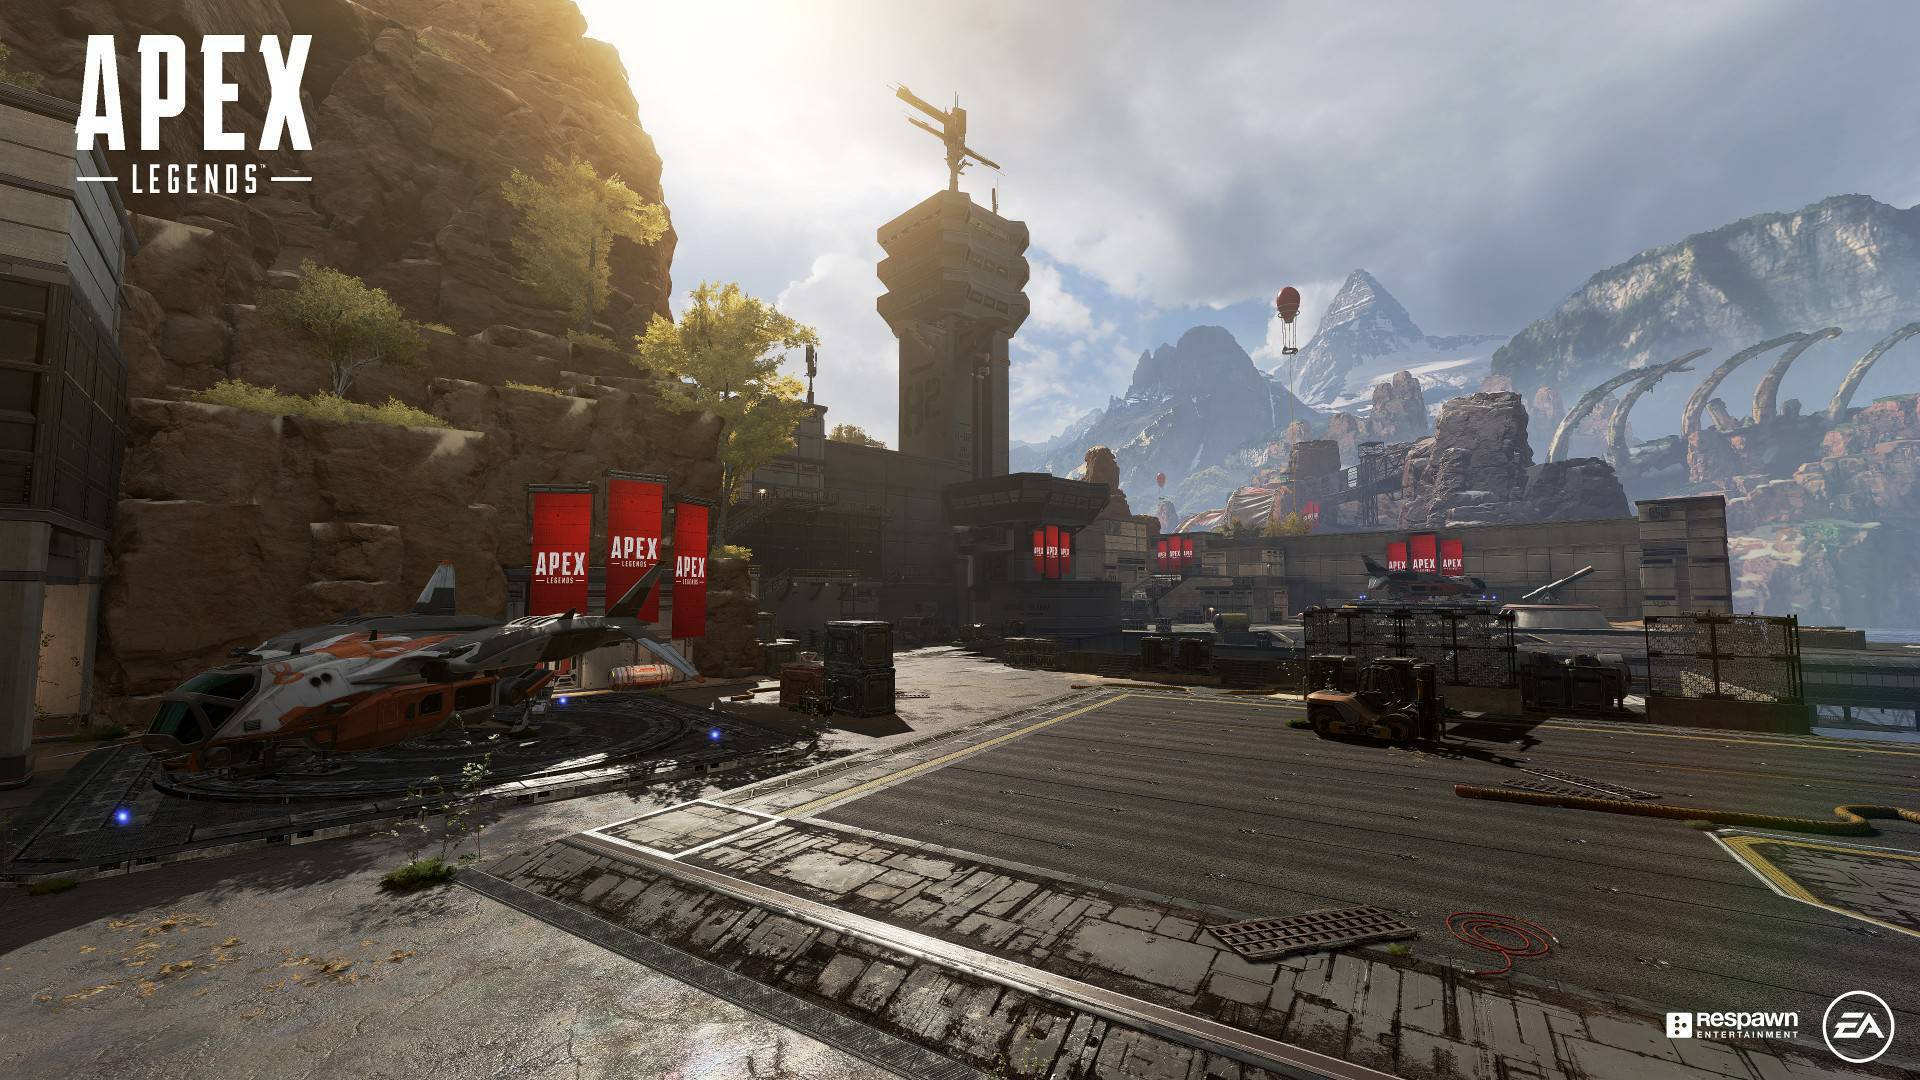 770 thousand cheaters banned in Apex Legends!